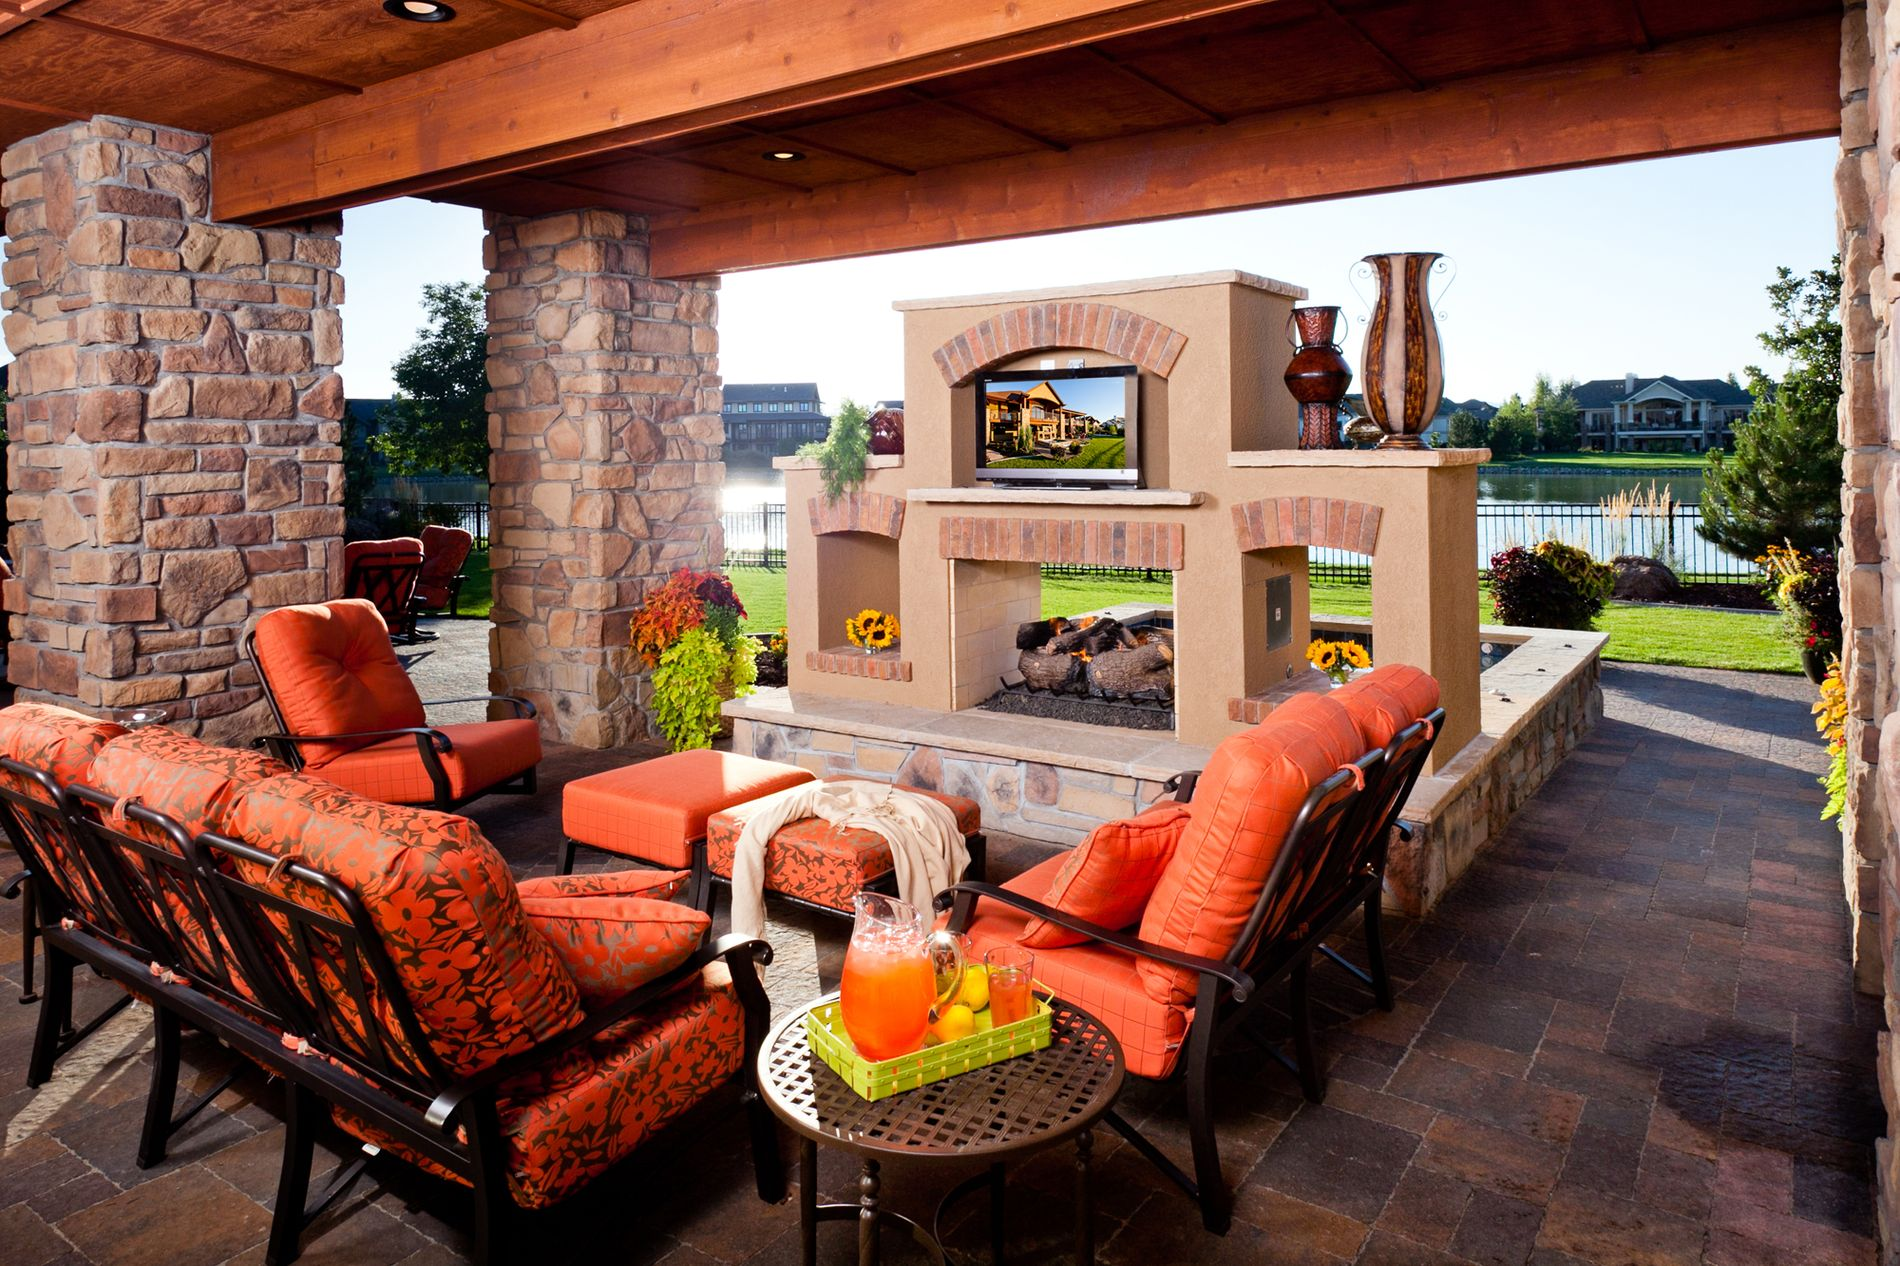 Lake Front See Through Fireplace and Paver Patio